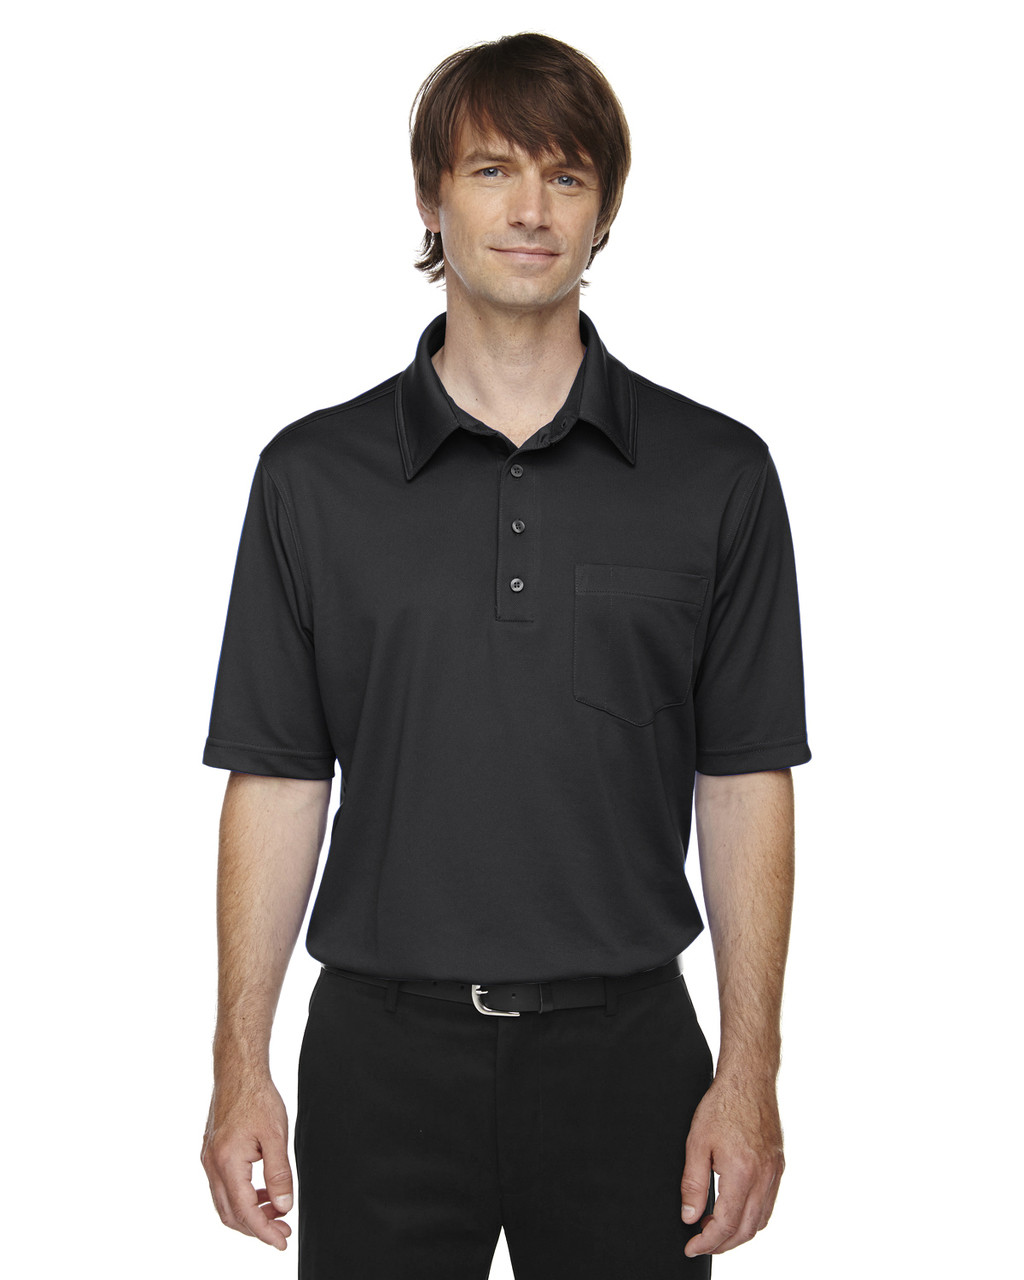 Carbon - 85114T Ash City - Extreme Eperformance Men's Tall Protection Plus Polo Shirt